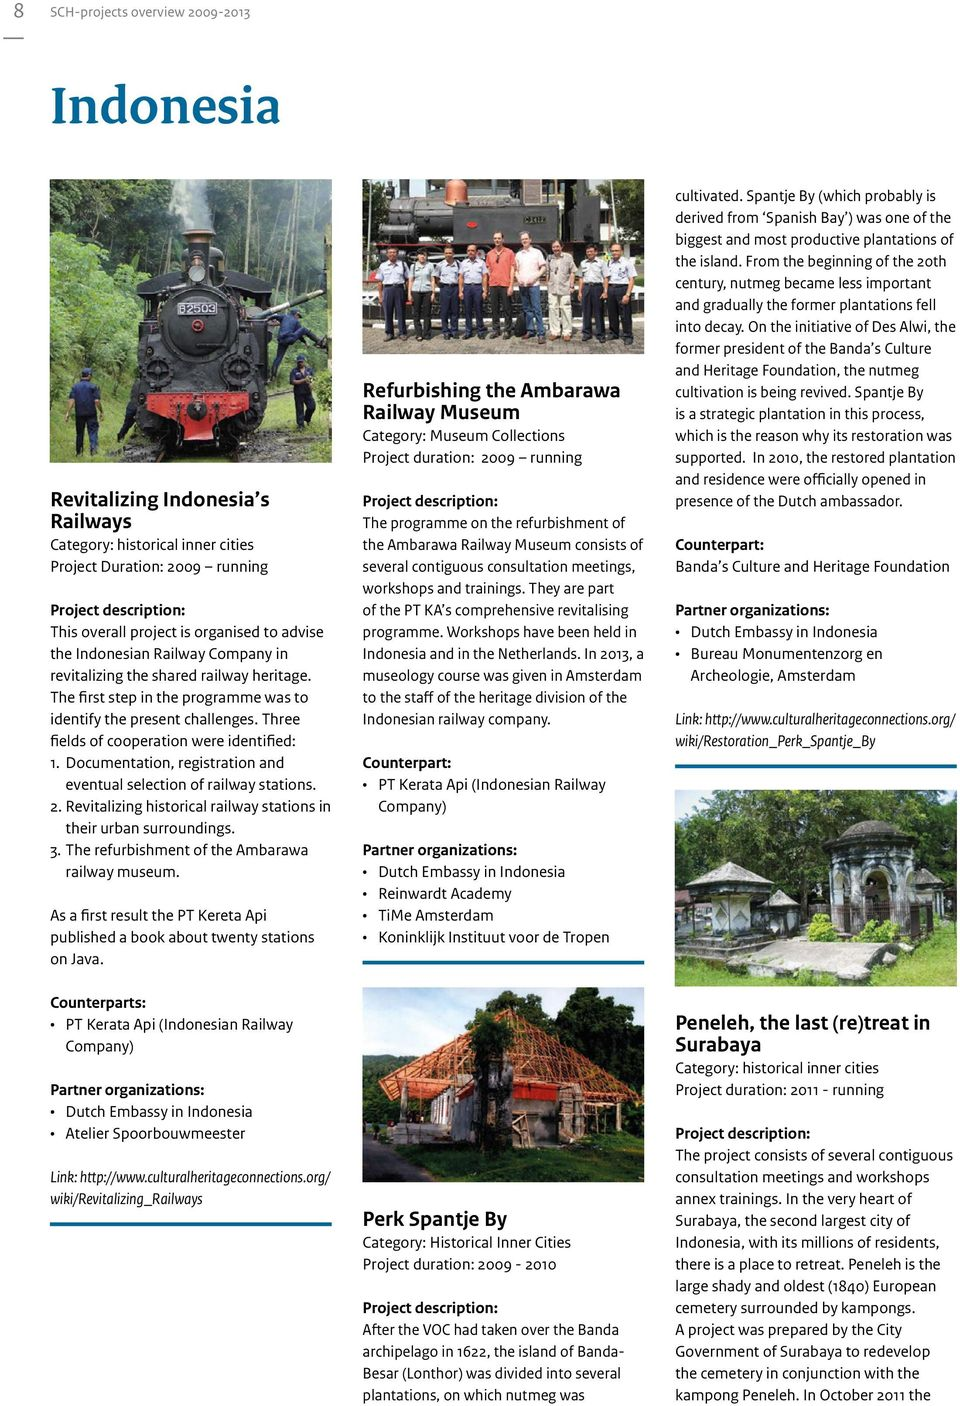 Documentation, registration and eventual selection of railway stations. 2. Revitalizing historical railway stations in their urban surroundings. 3. The refurbishment of the Ambarawa railway museum.